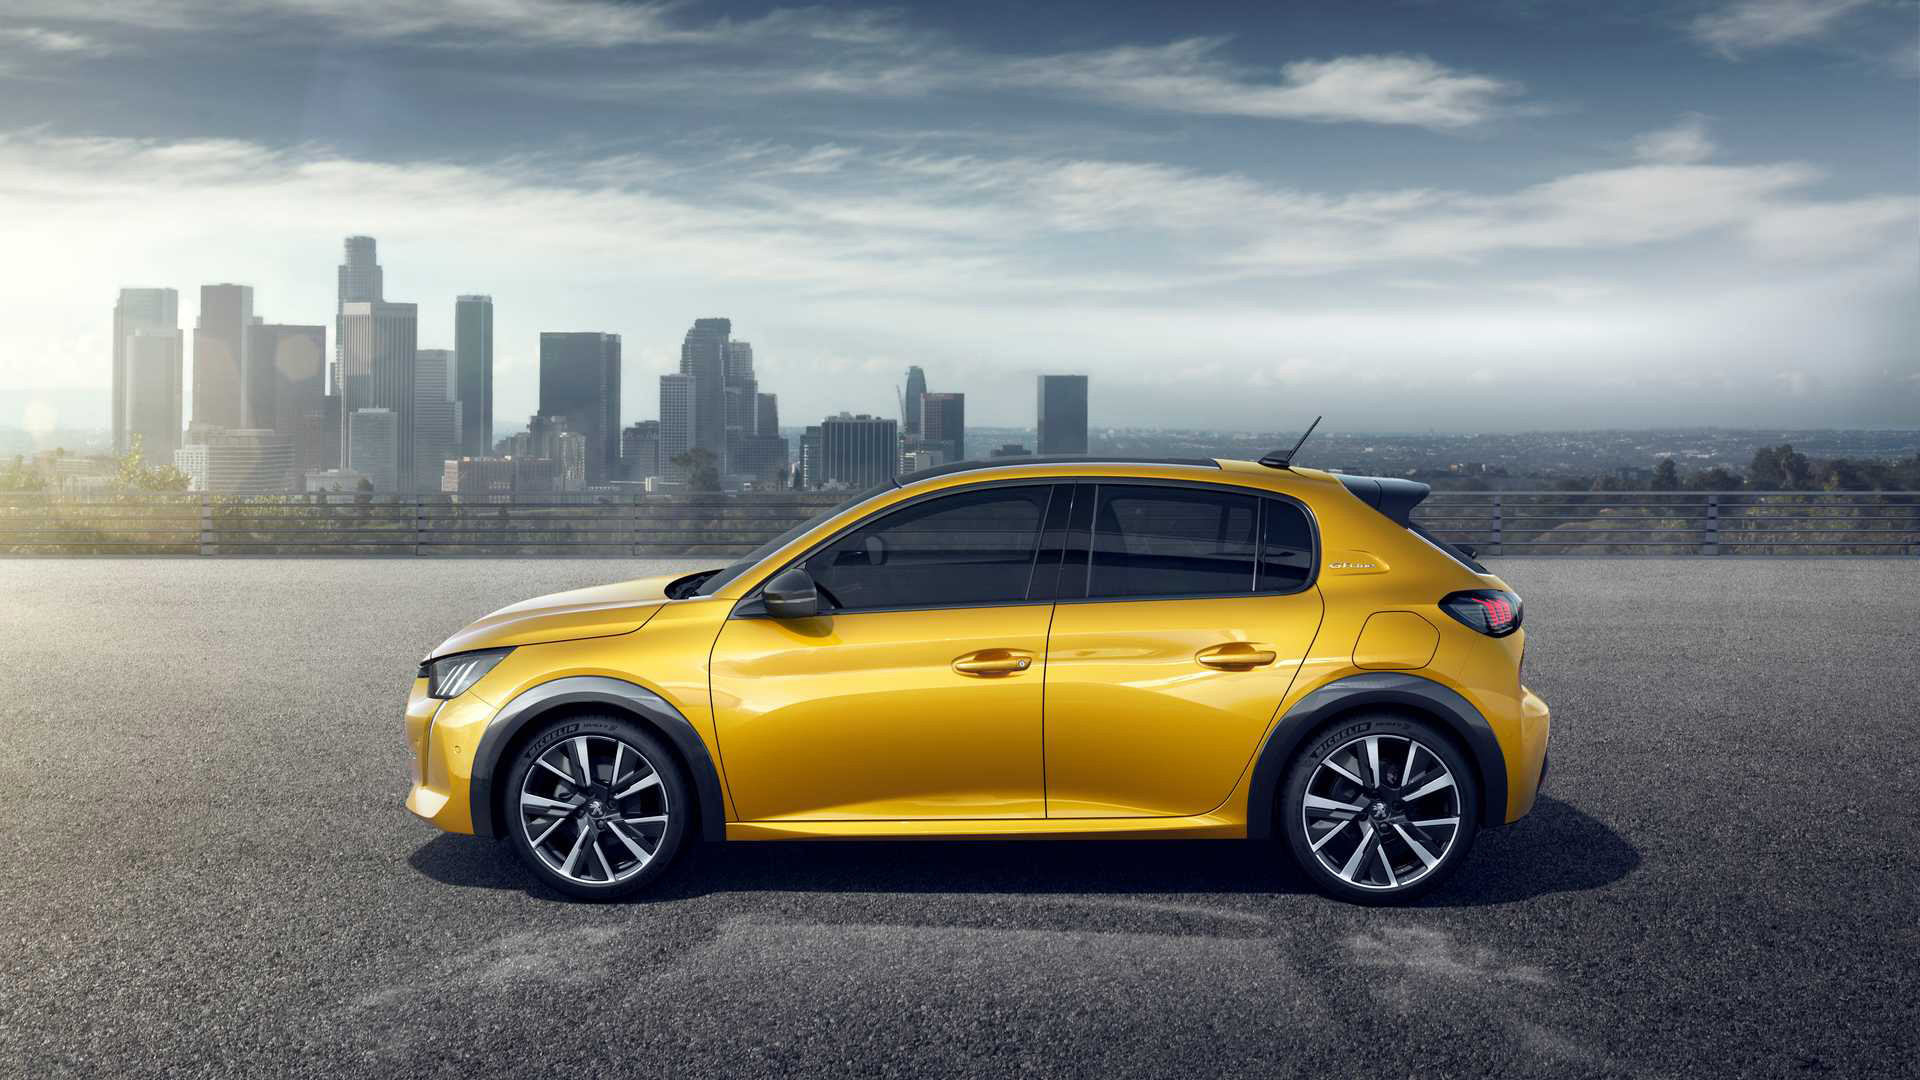 All New Peugeot 208 for £229 per Month